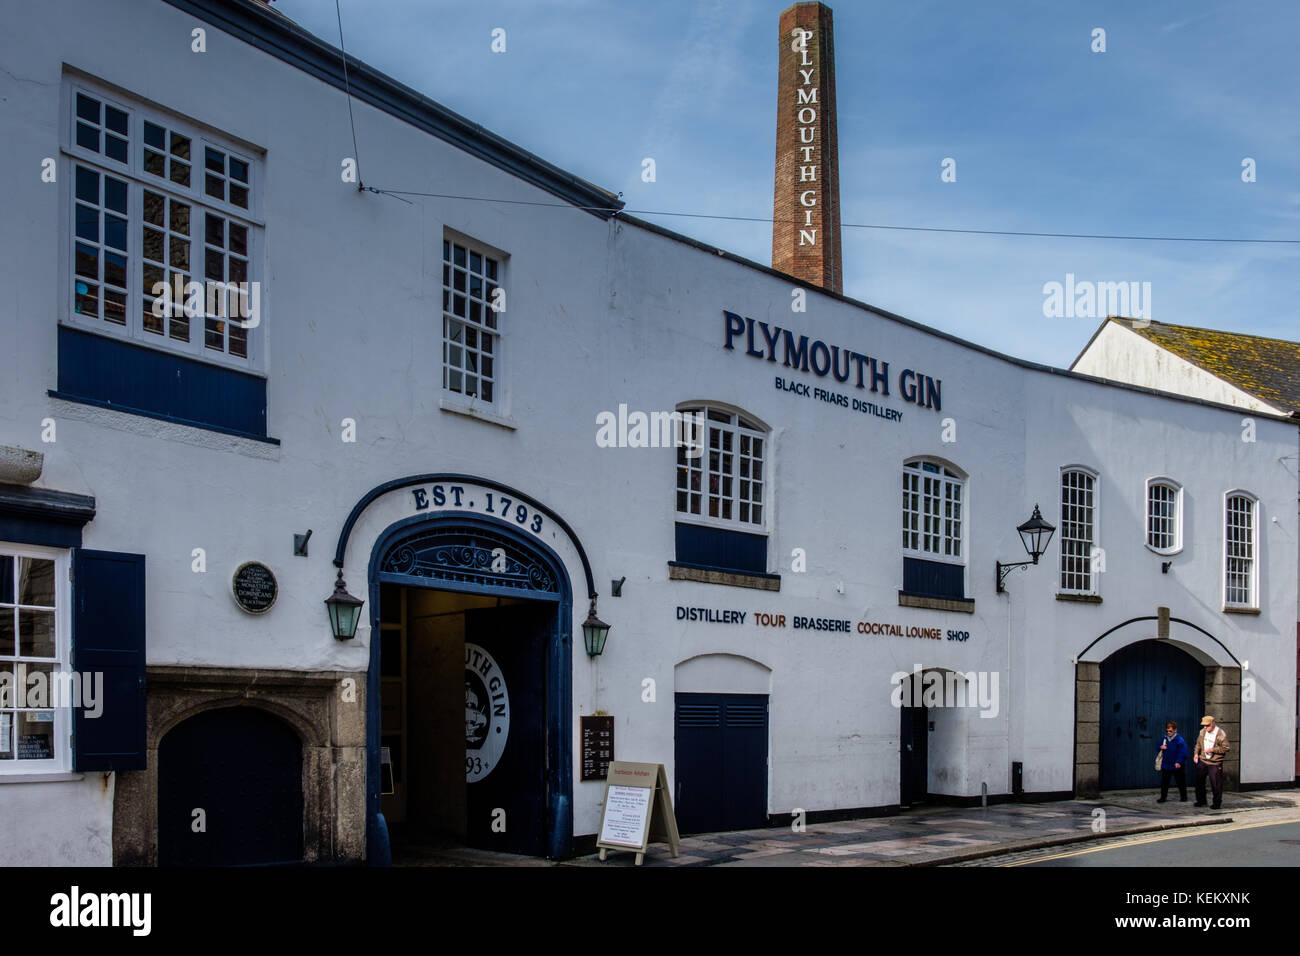 Plymouth Gin Distillery, The Barbican, Plymouth, Devon, England, UK - Stock Image